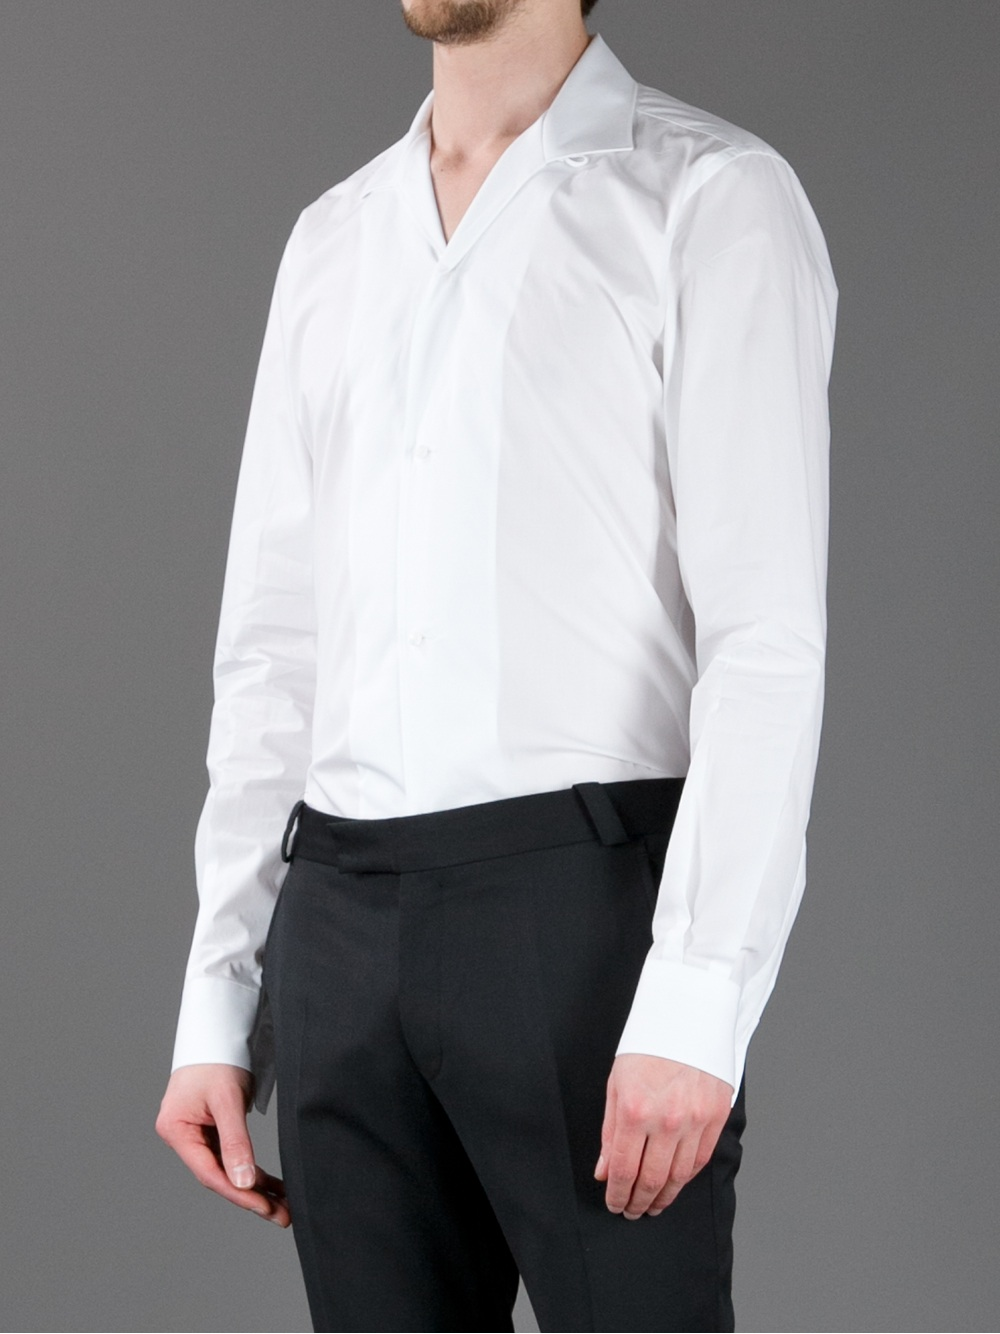 Dolce & gabbana Open Collar Shirt in White for Men | Lyst